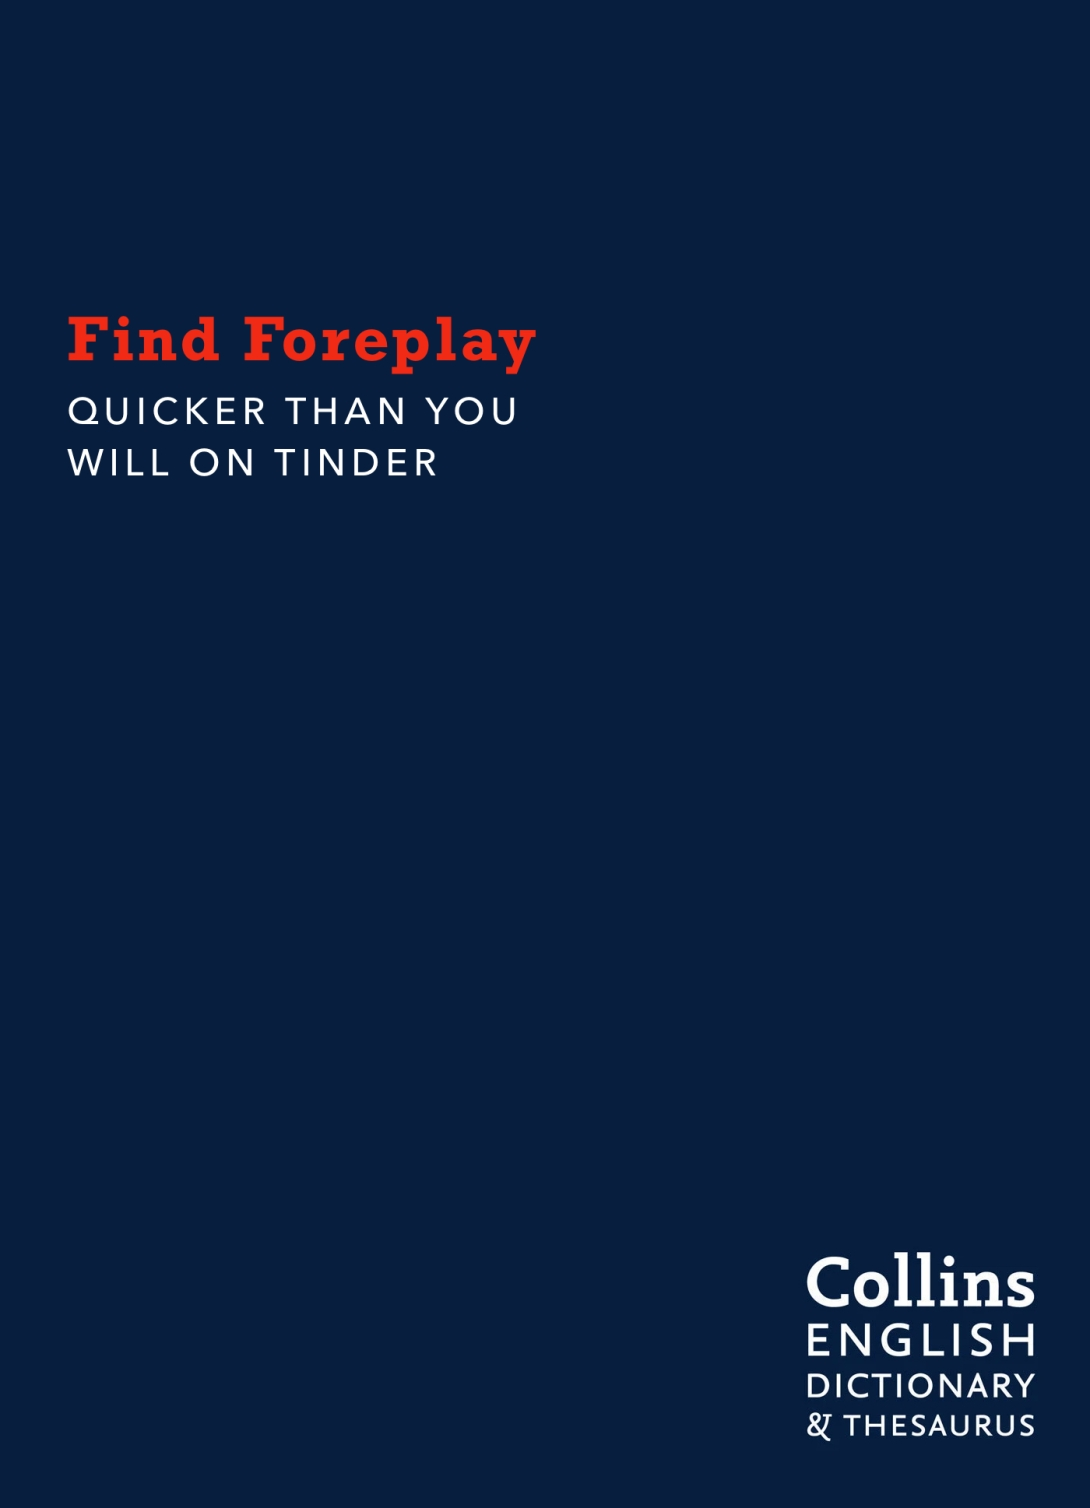 DICTIONARY - FOREPLAY